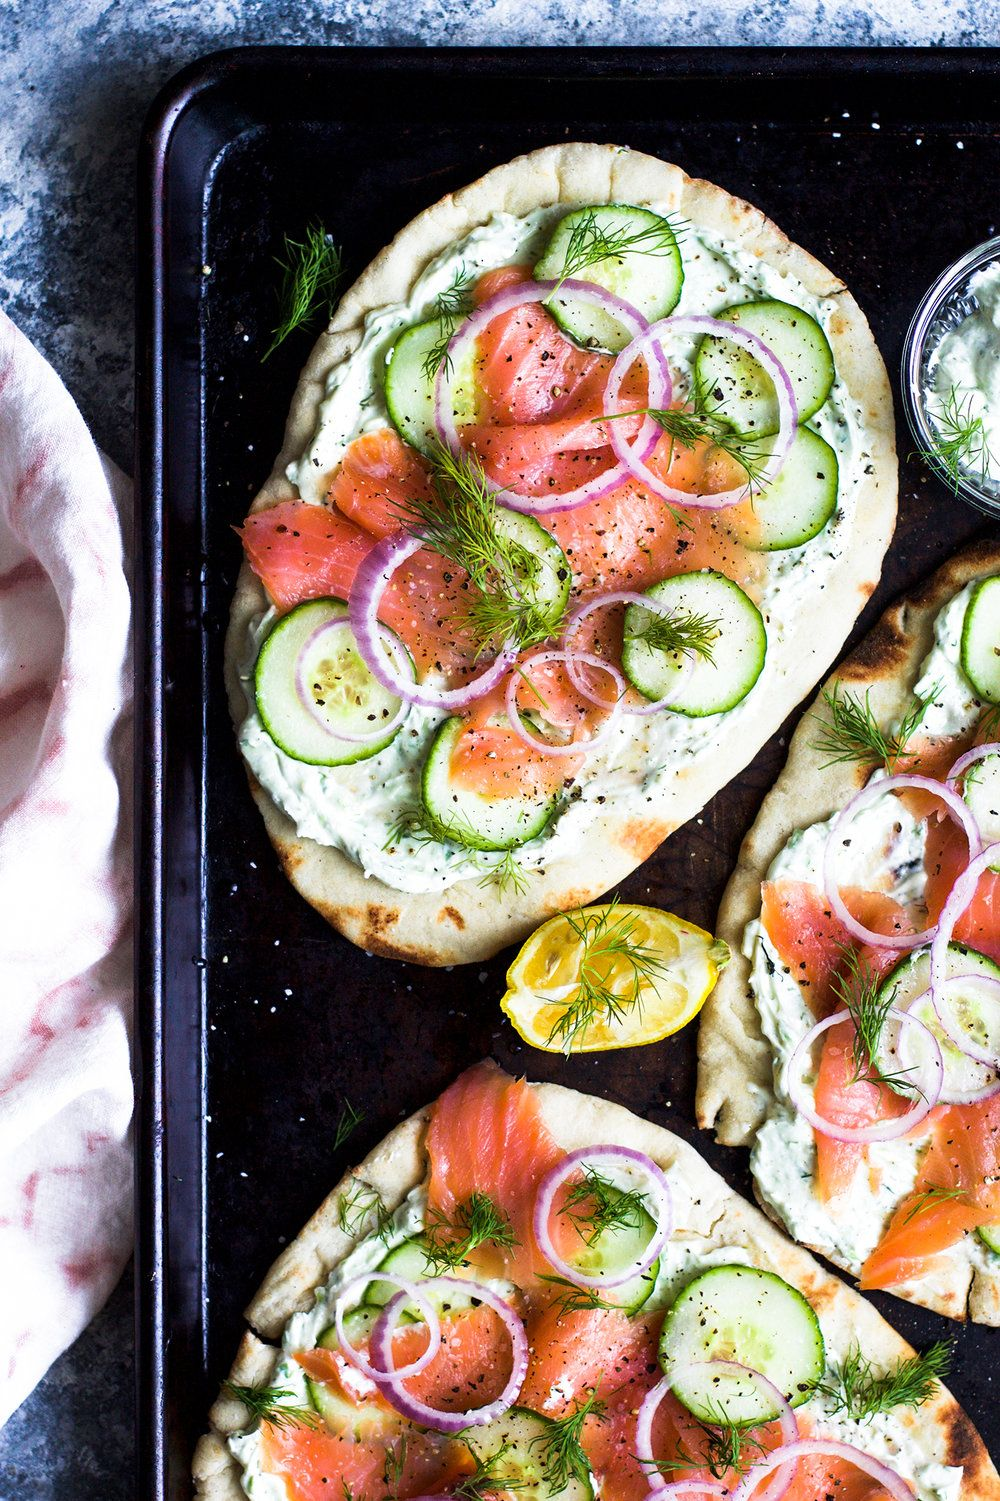 Easy Lox And Herbed Cream Cheese Naan Pizzas My Diary Of Us Healthy Eating Meal Plan Healthy Eating Recipes Breakfast Recipes Easy